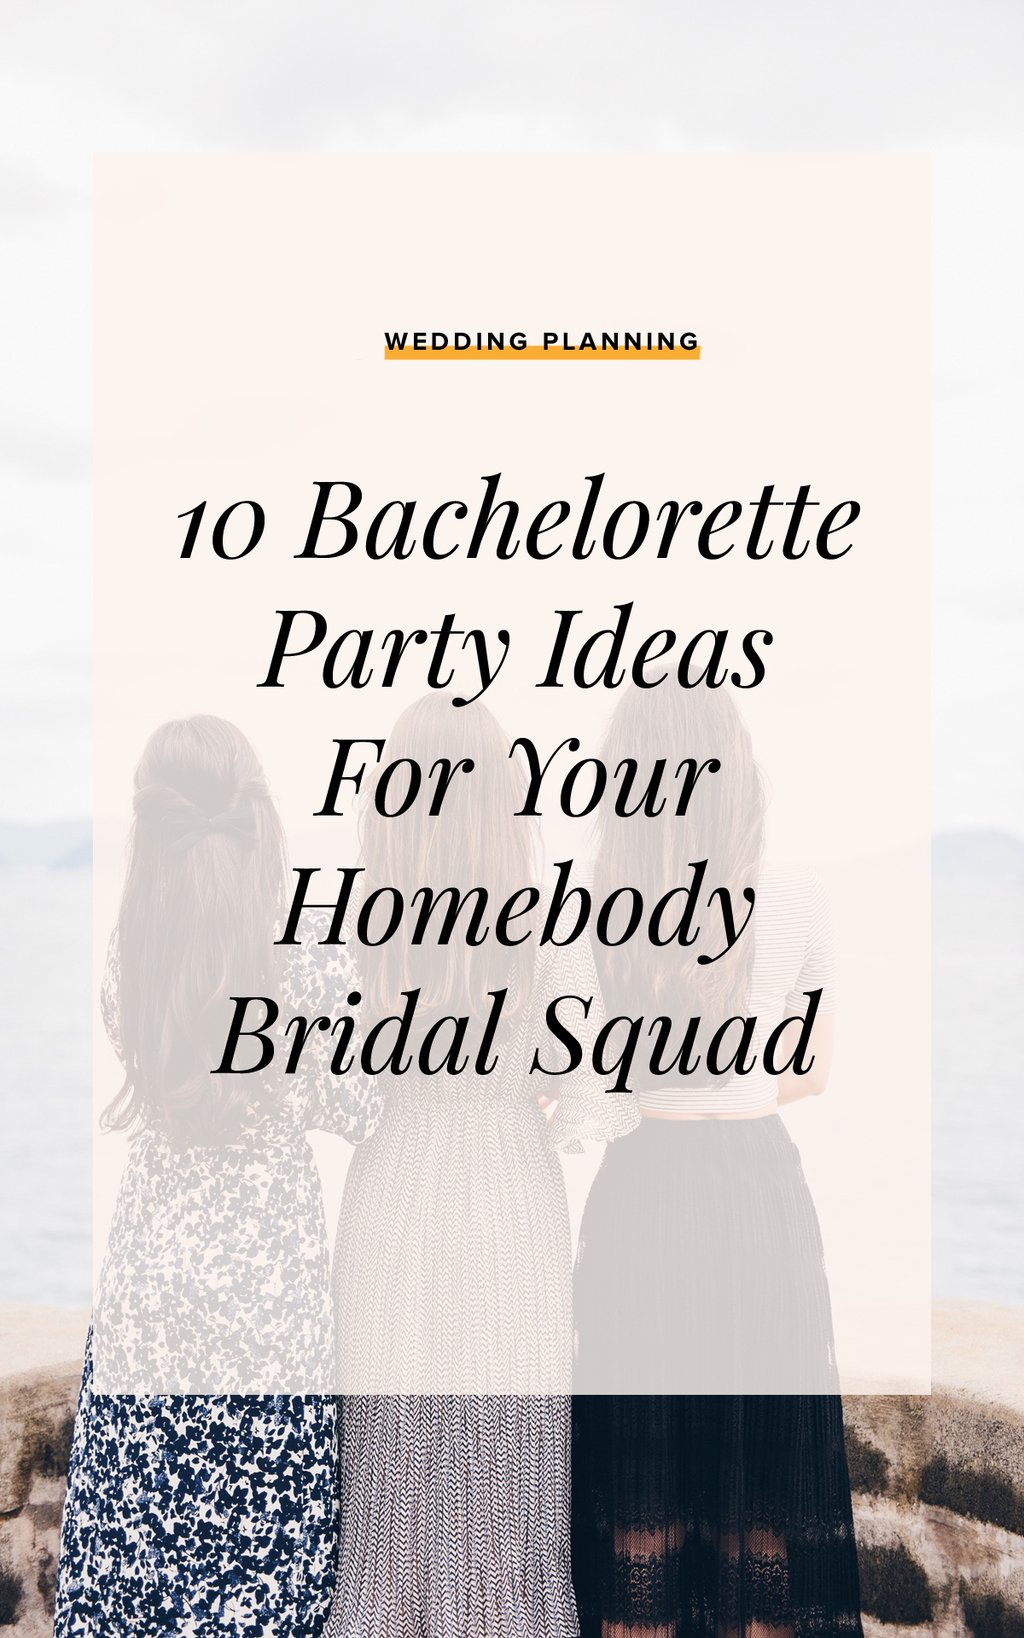 10 Bachelorette Party Ideas For The Homebody Bride Ruffled